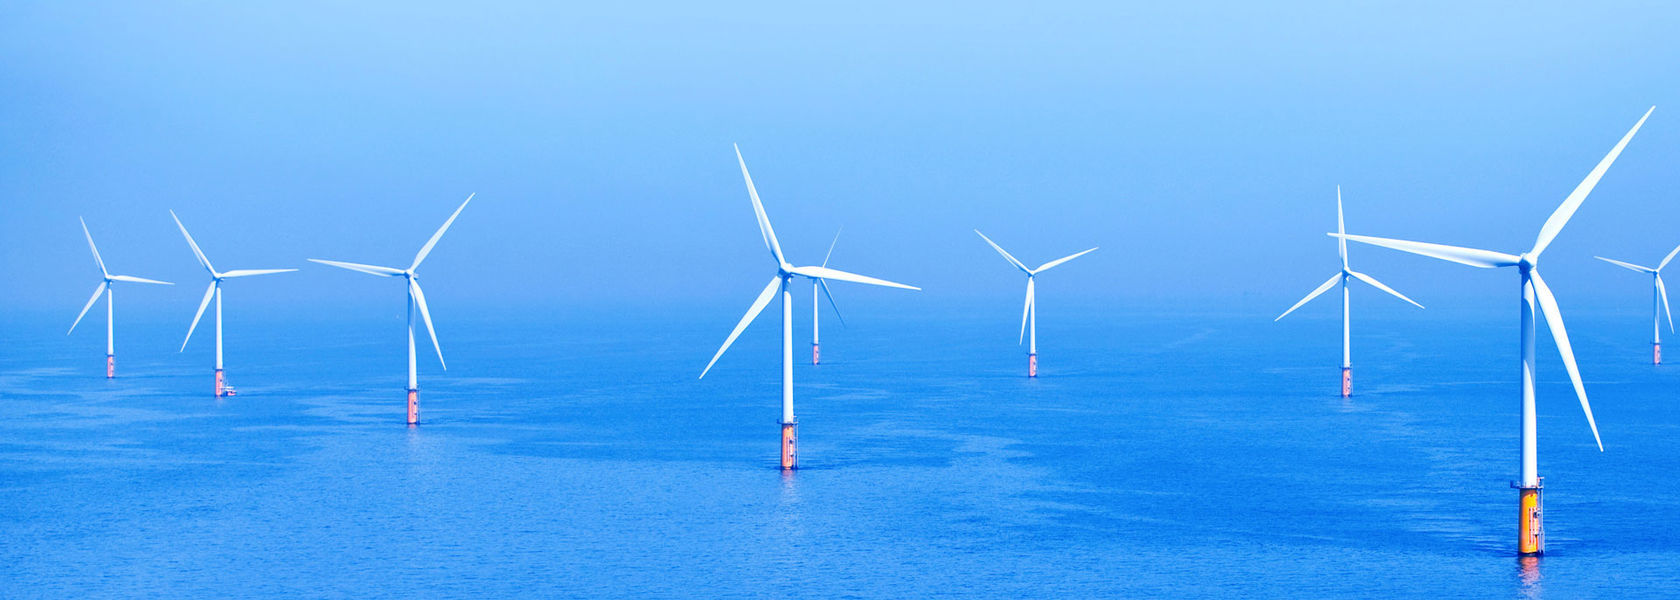 Equinor, South Korean companies team up to build offshore wind farm